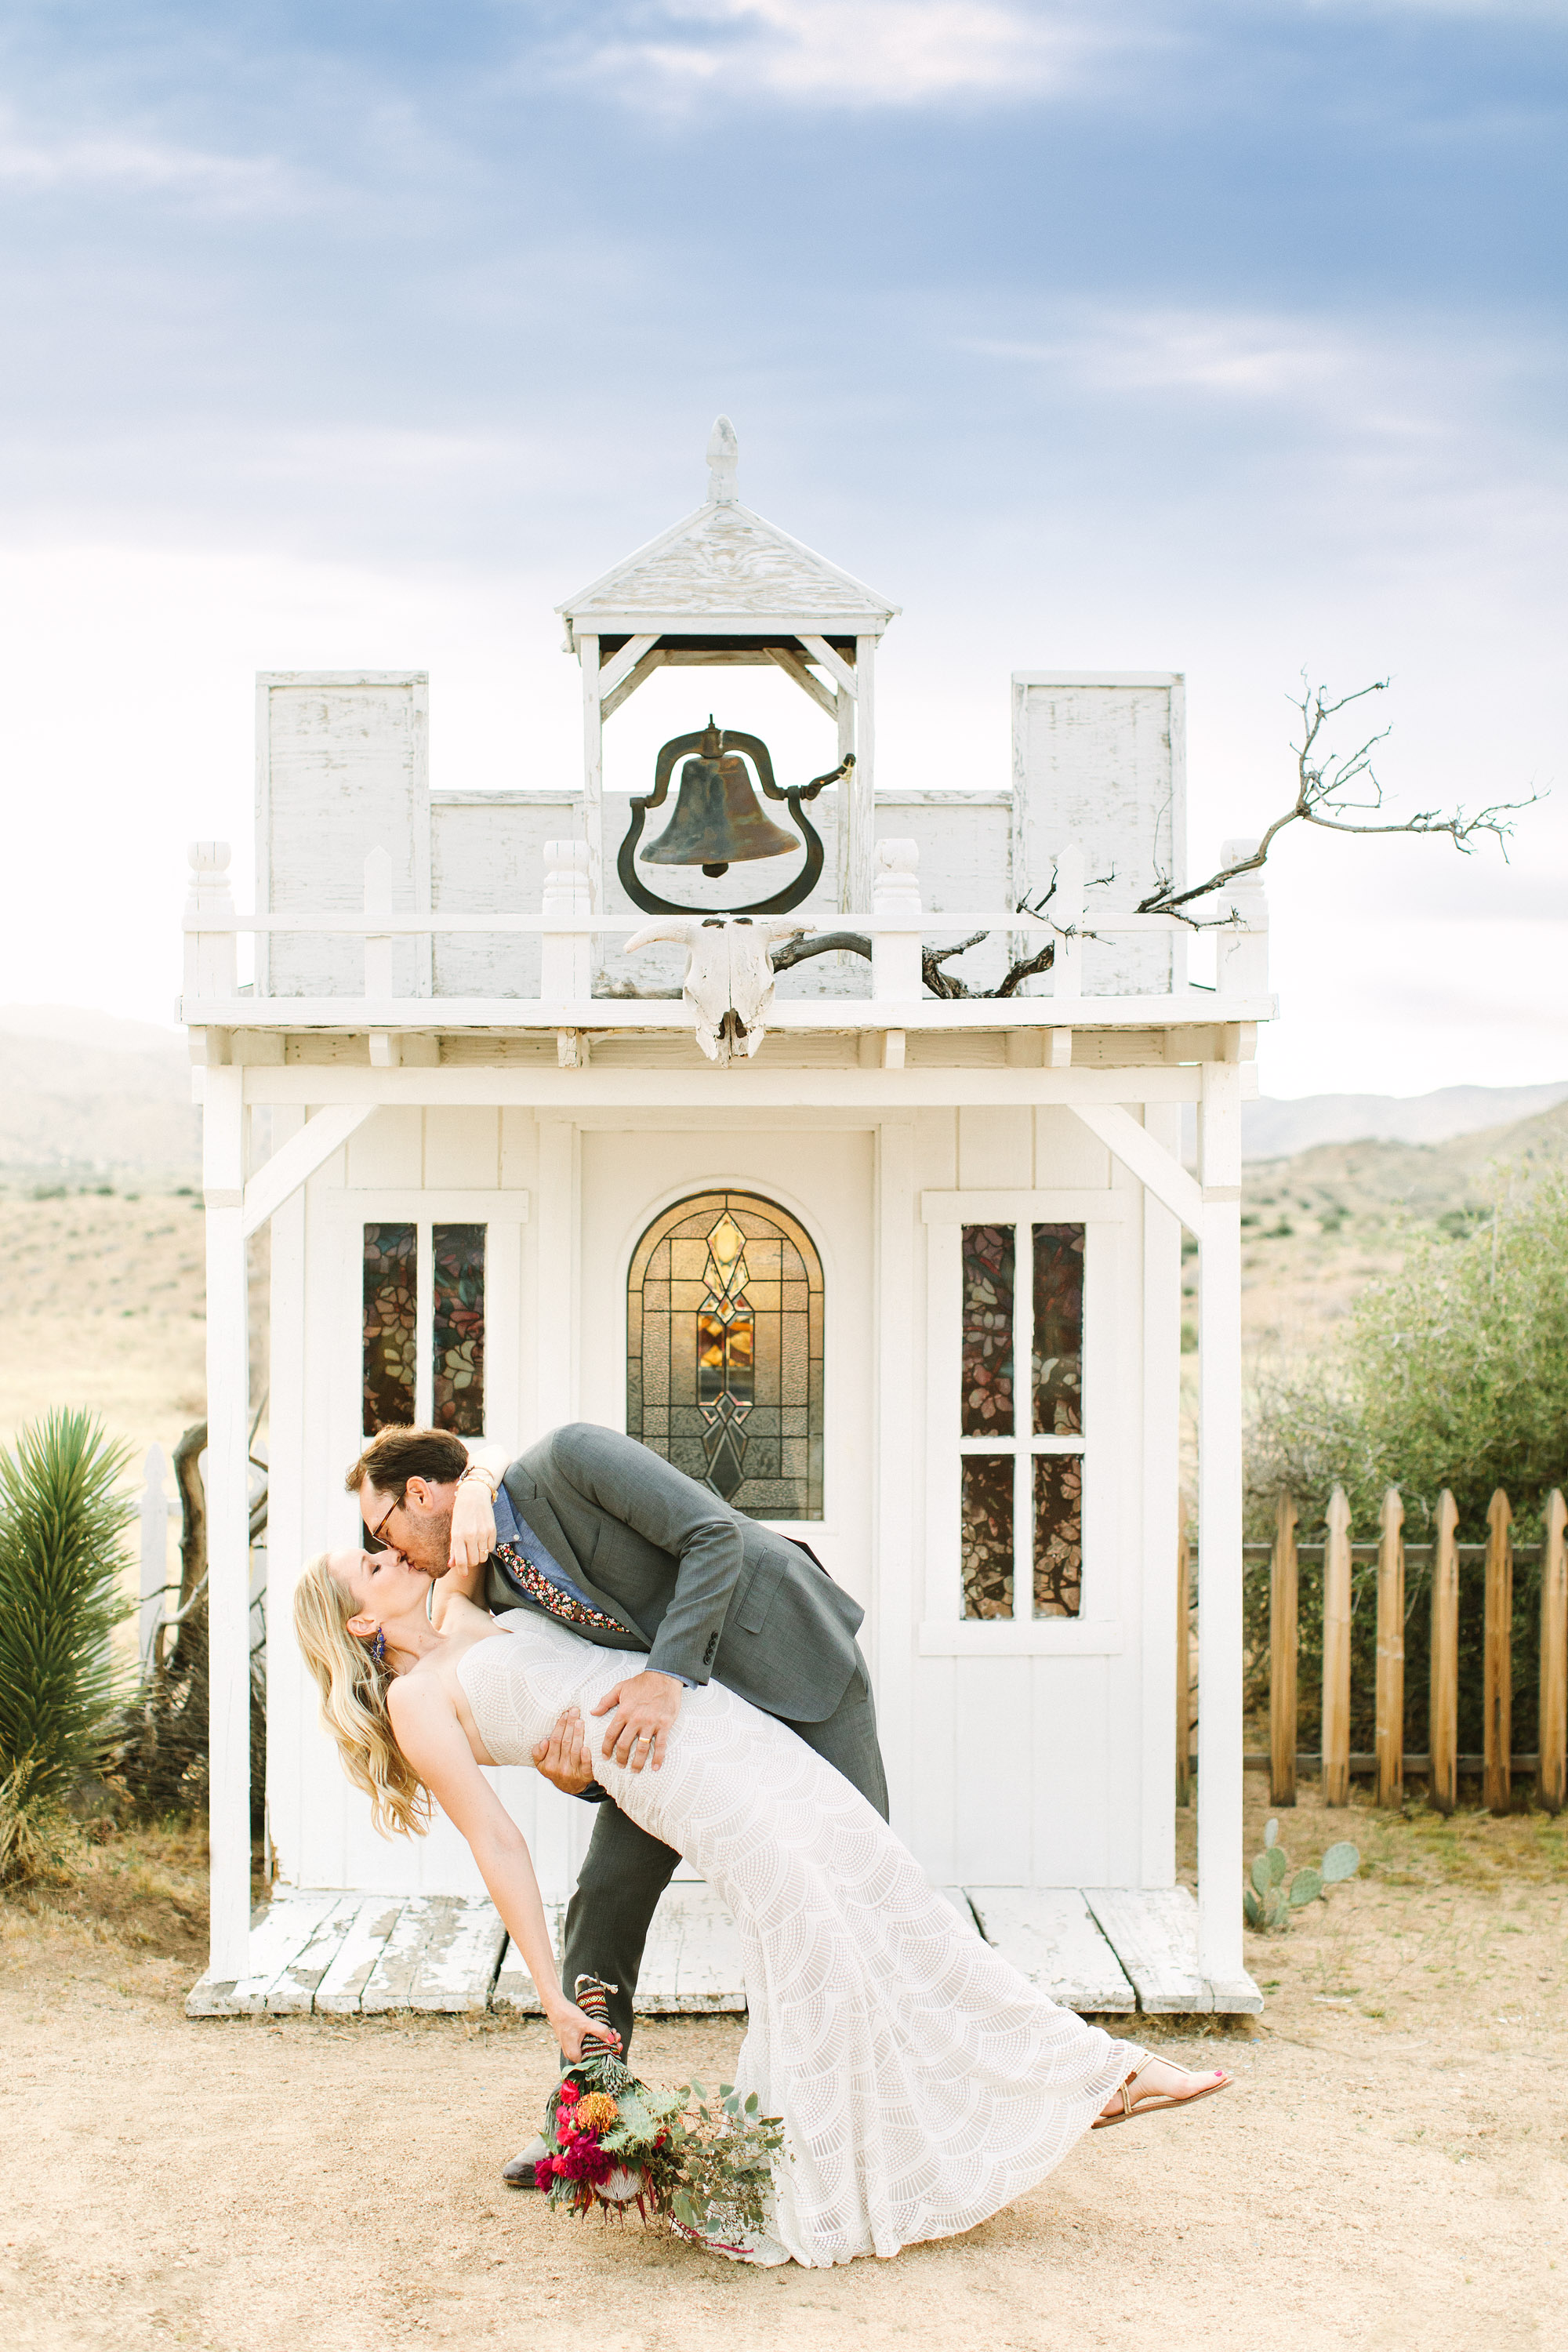 Ryann & Nick's Wedding in Pioneertown